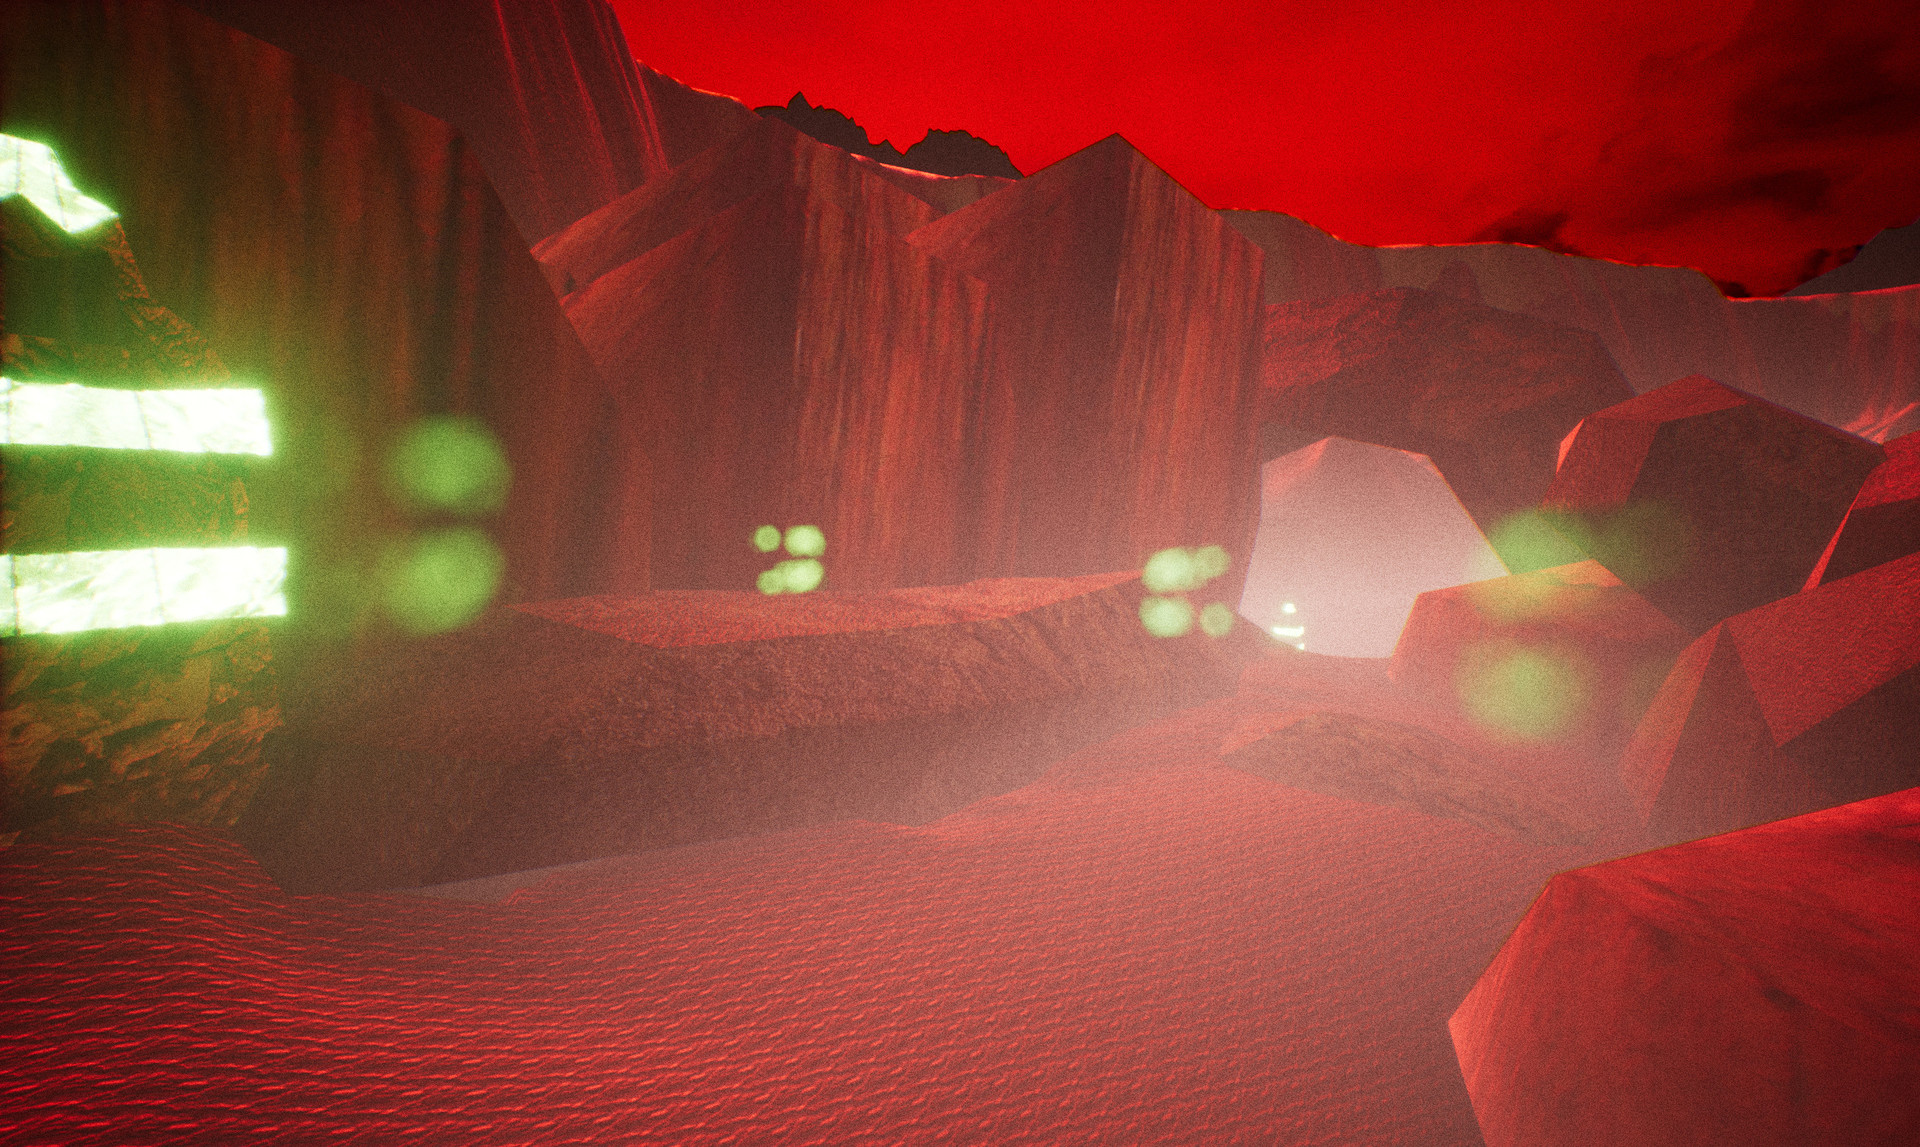 High Screenshot #9 - Love Flares